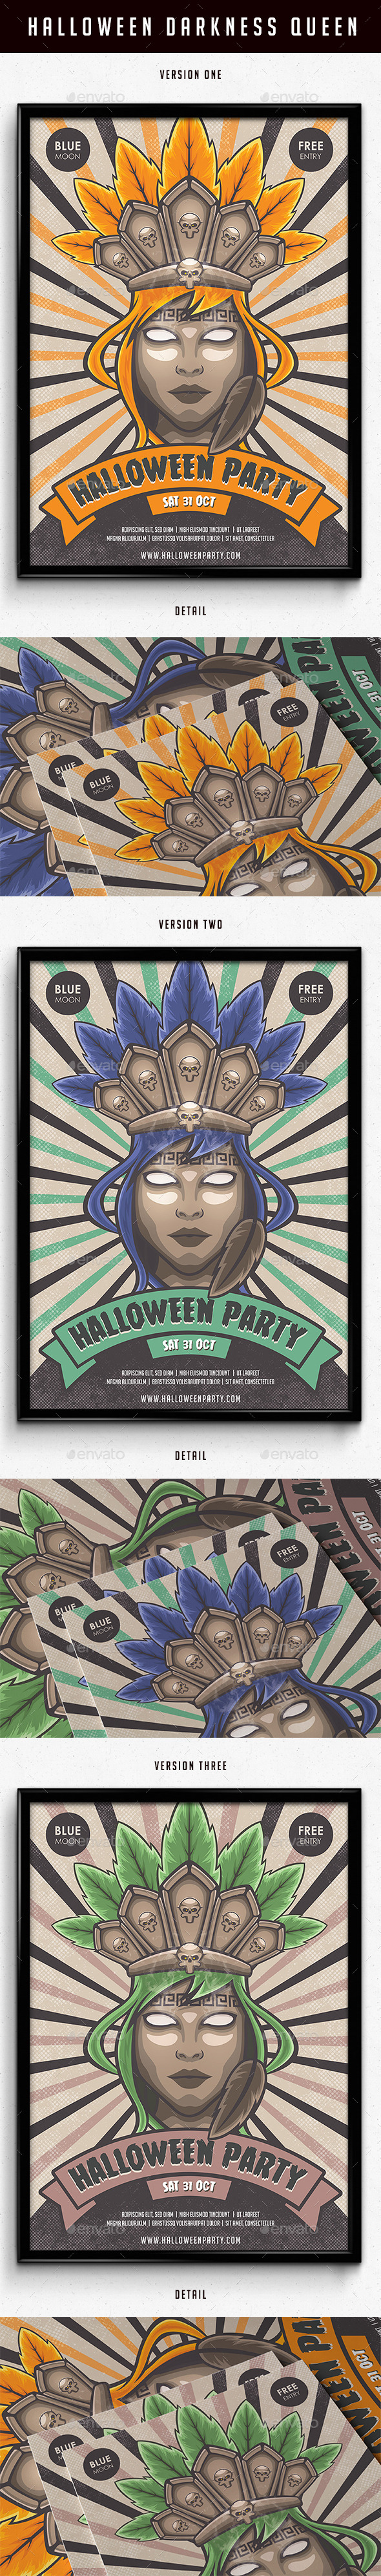 Halloween Darkness Queen Poster  - Events Flyers